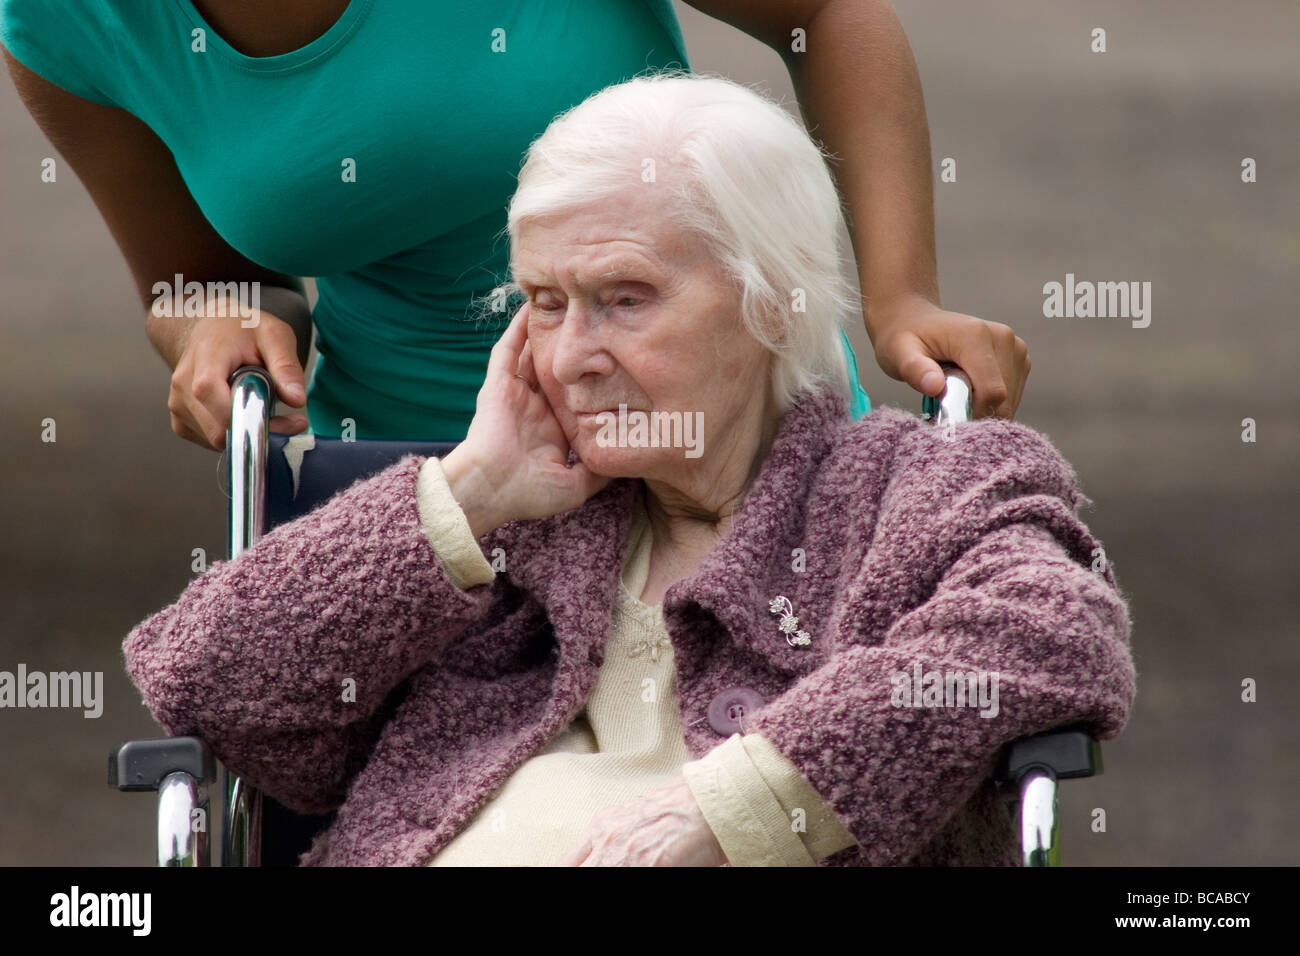 unhappy geriatric lady being pushed in wheelchair by woman - Stock Image